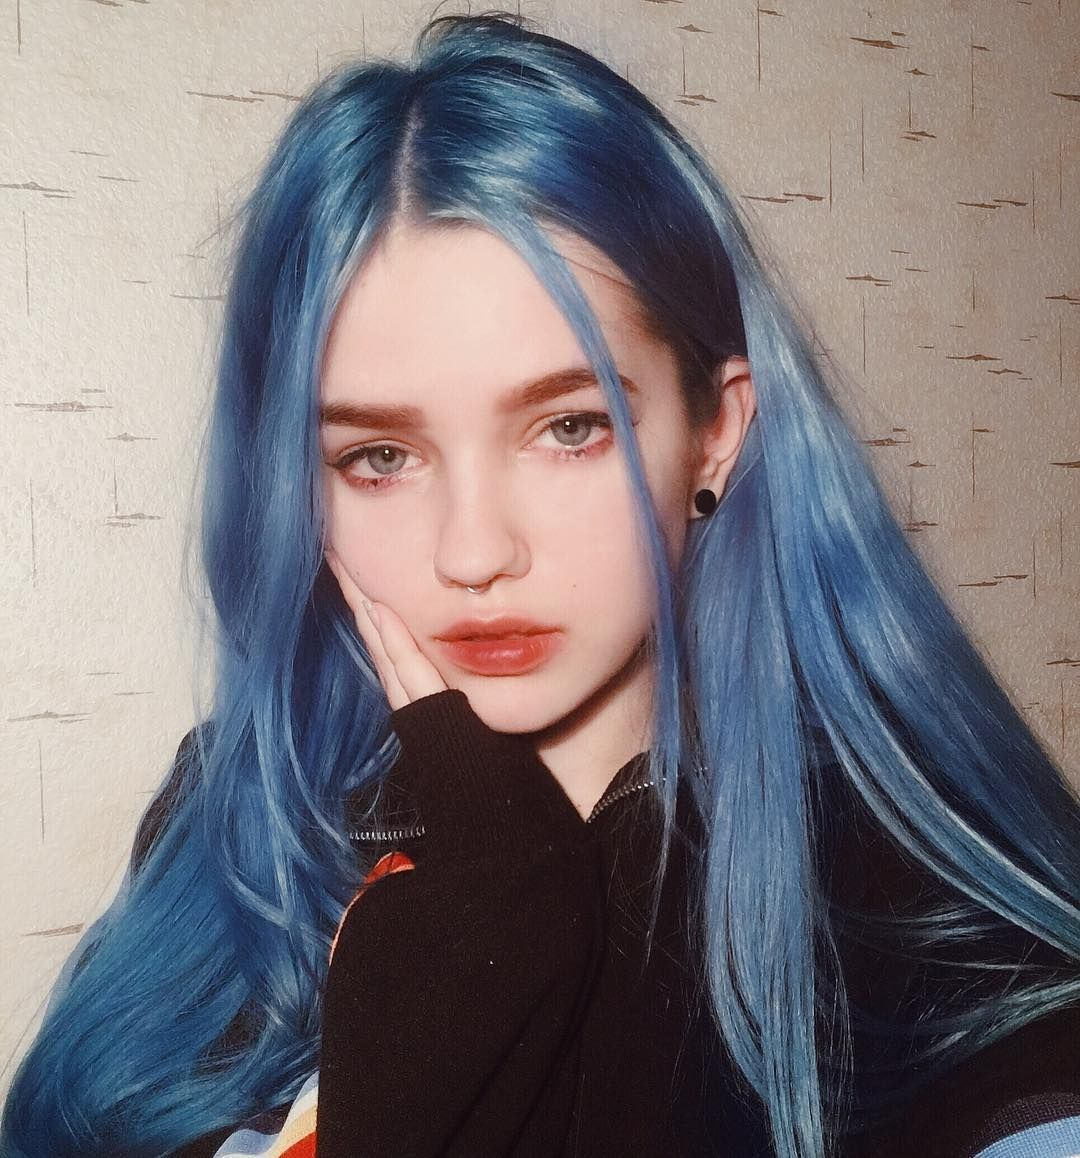 Repost Stunning Blue Hair Syntheticwigs Bluehair Hair Color Blue Aesthetic Hair Grunge Hair